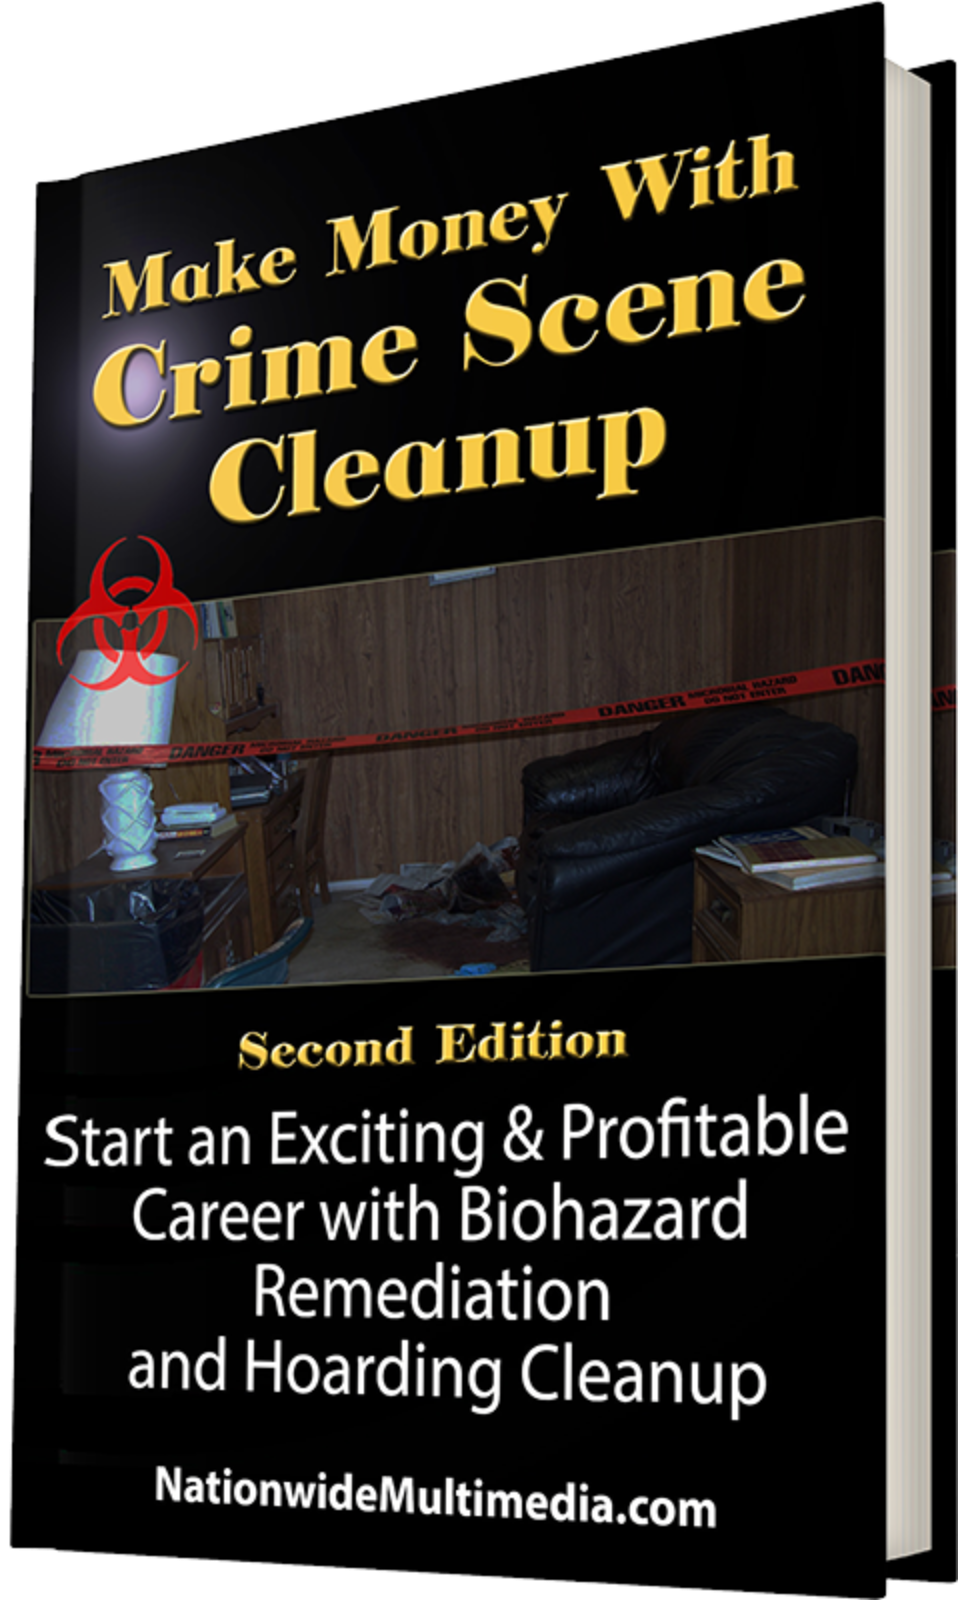 Start an Incredibly Profitable Biohazard Remediation & Hoarding Cleanup Business!